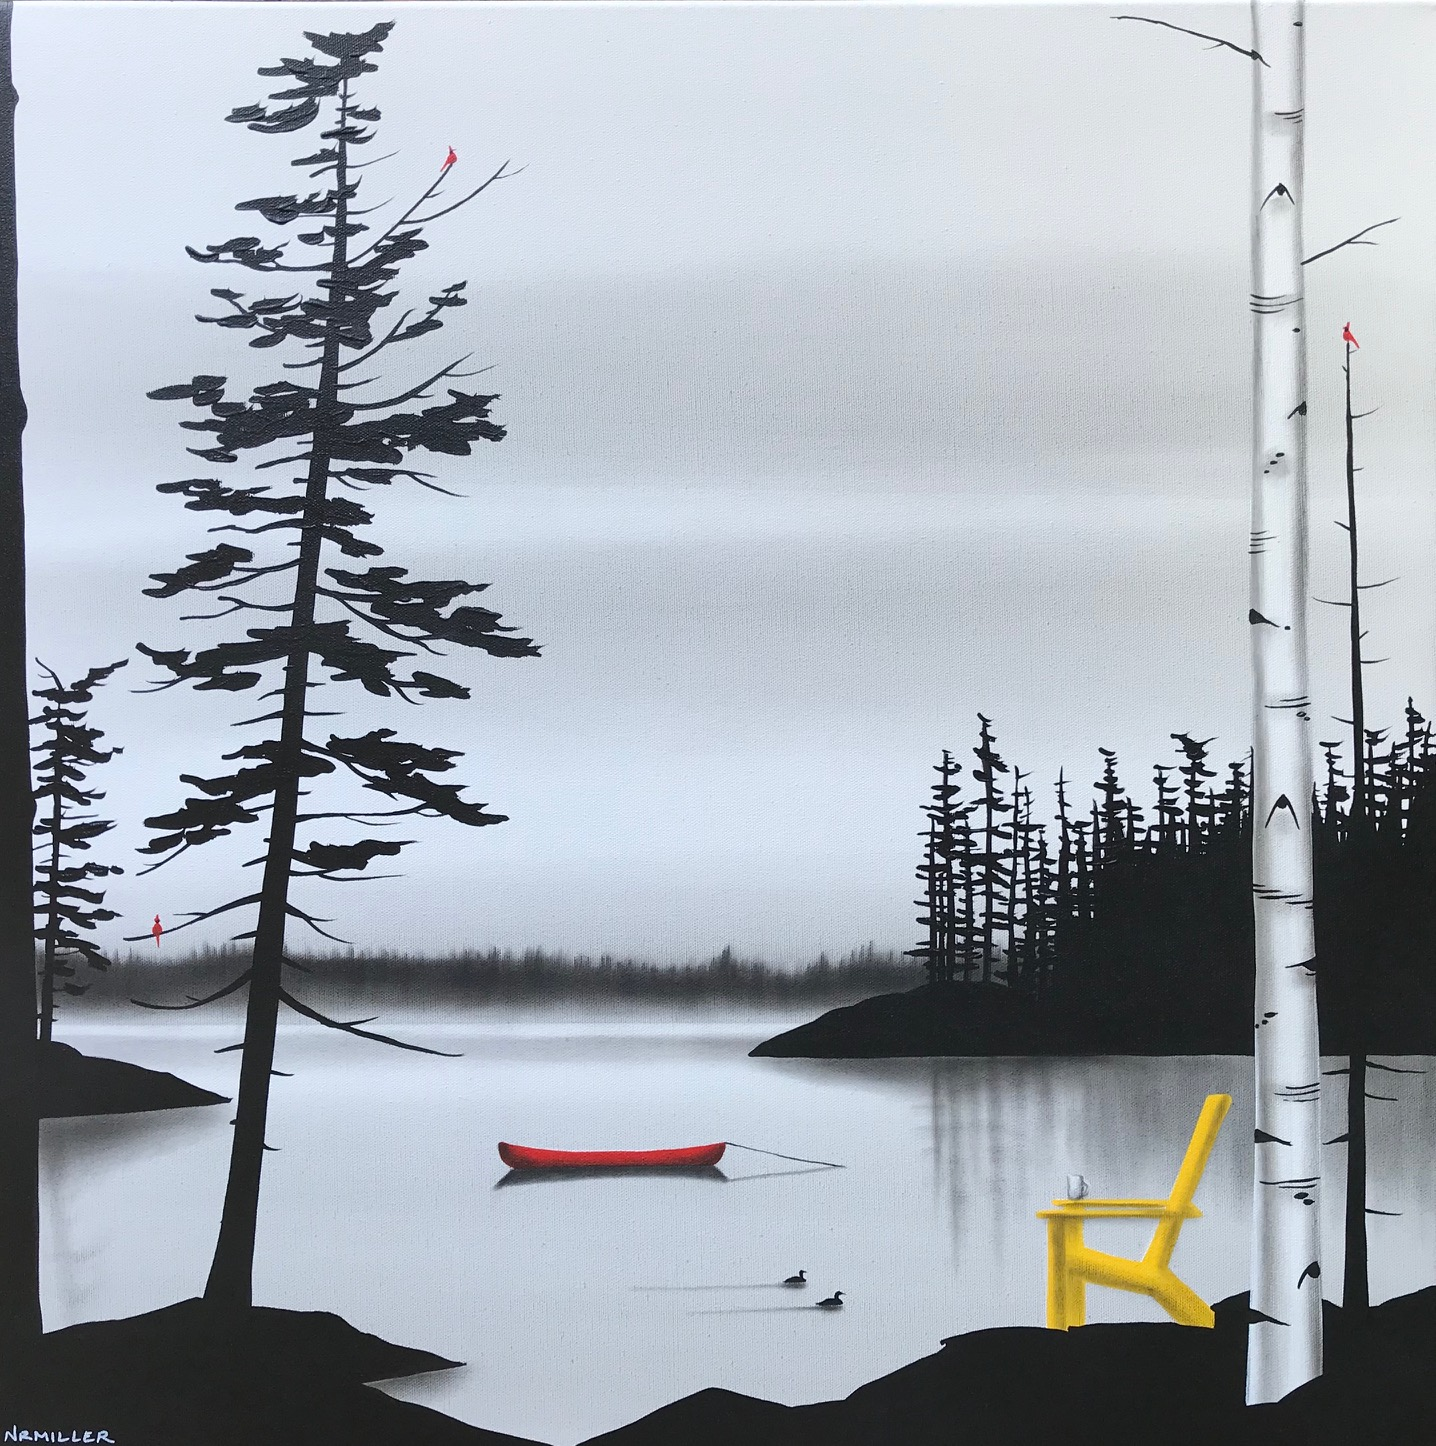 The Morning Ritual, mixed media landscape painting by Natasha Miller | Effusion Art Gallery + Glass Studio, Invermere BC